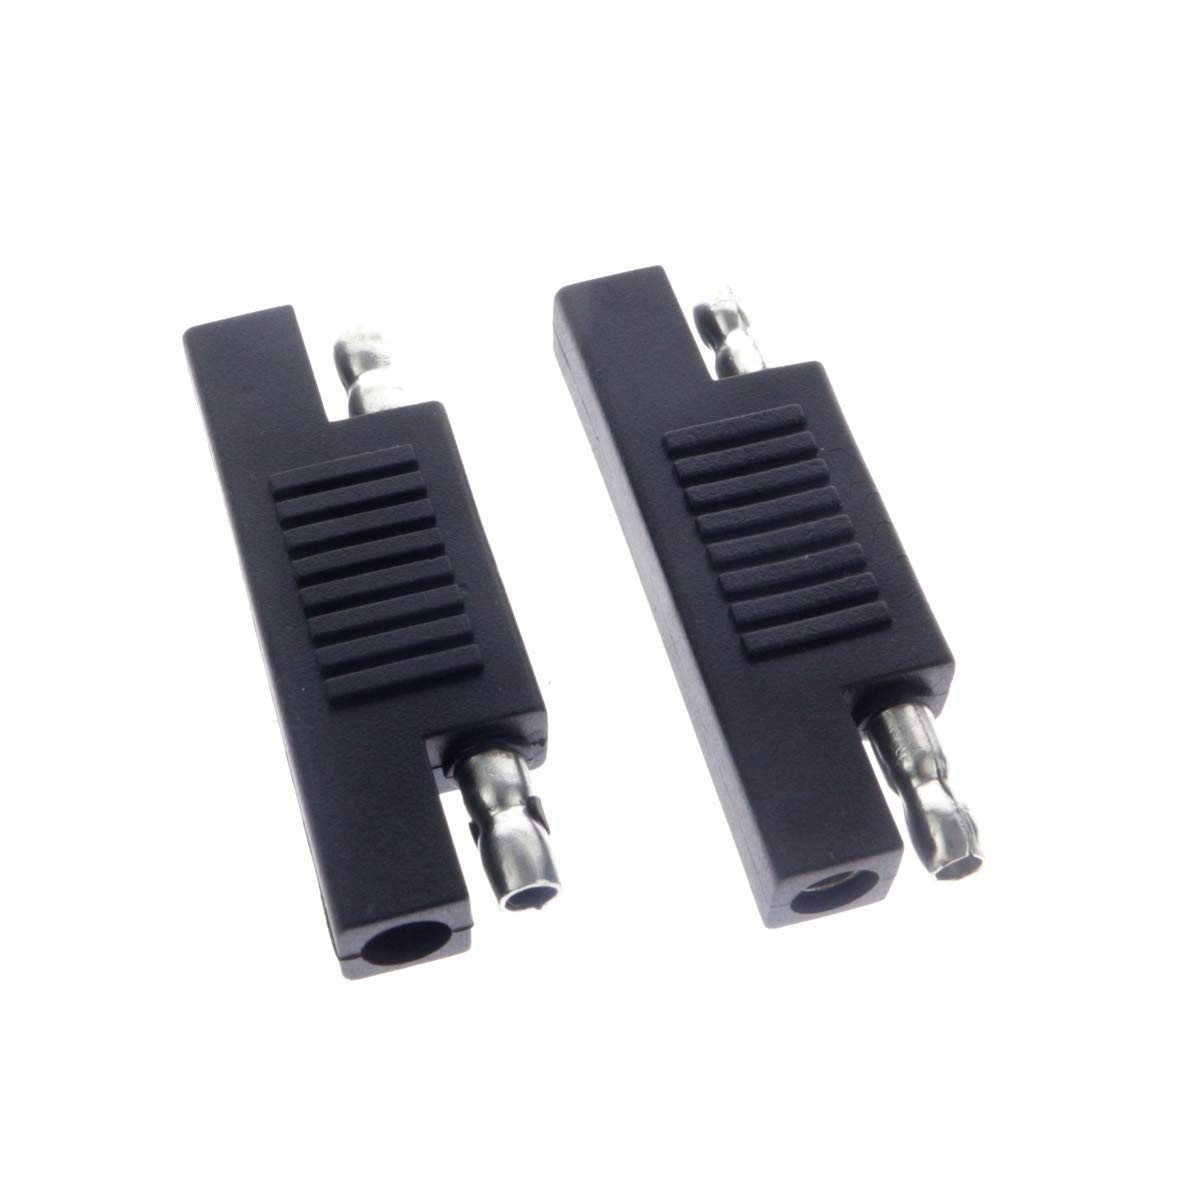 MC4-SAE Dunhil MC4 to SAE Adapter 10AWG//14.8in for RV Solar Panel with 2pcs SAE to SAE Polarity Reverse Connectors